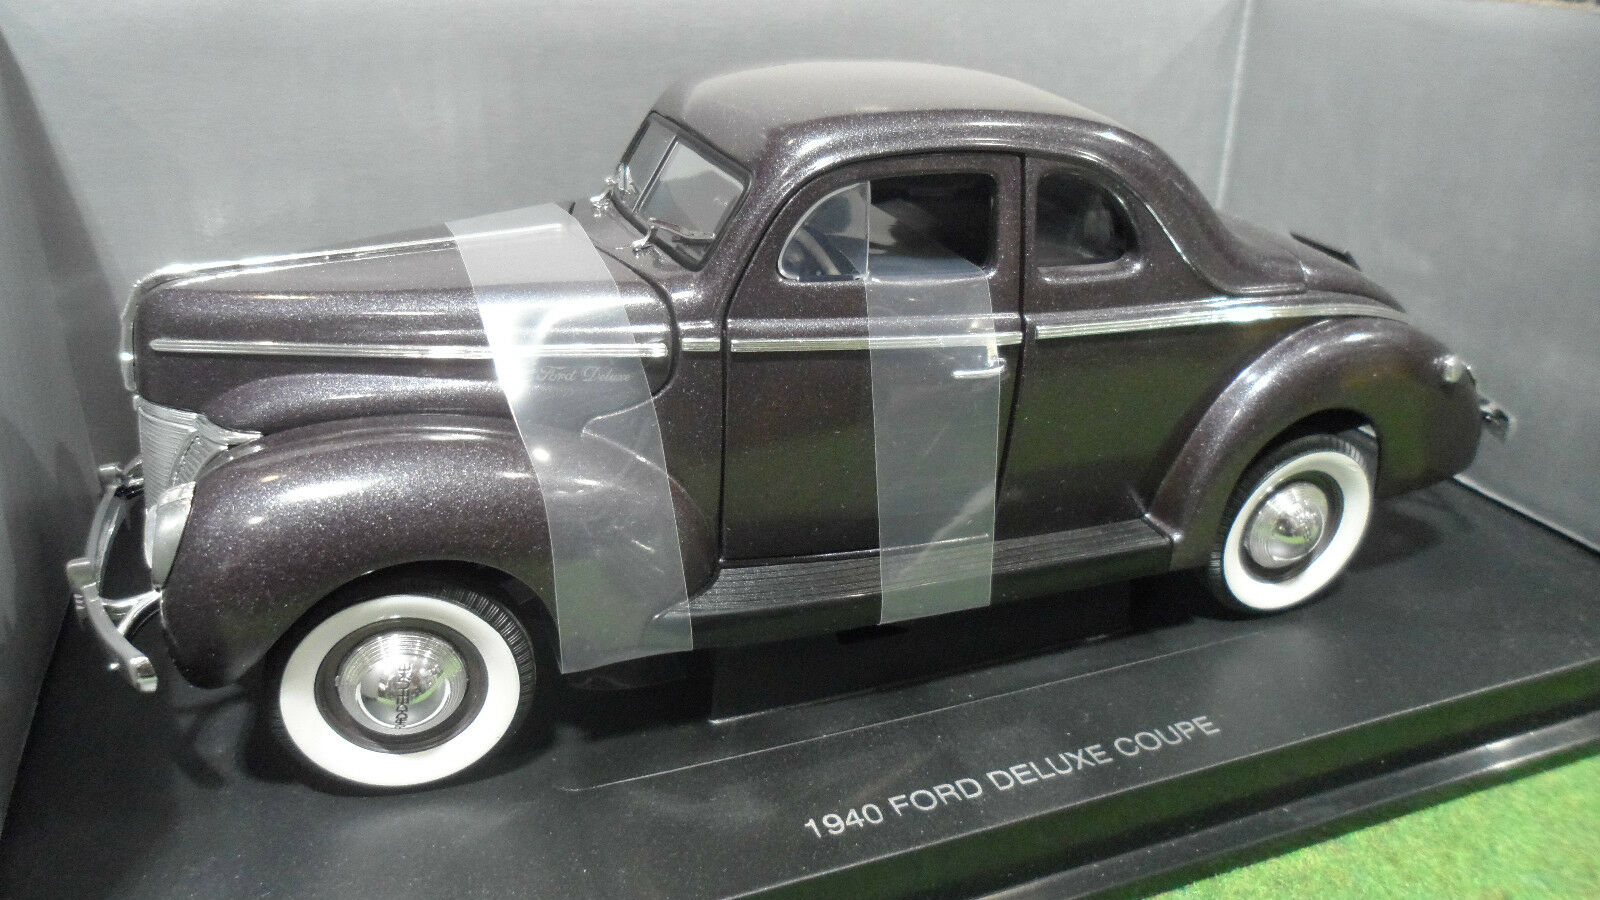 FORD DELUXE COUPE 1940 viola 1 18 UNIVERSAL HOBBIES voiture miniature collectio